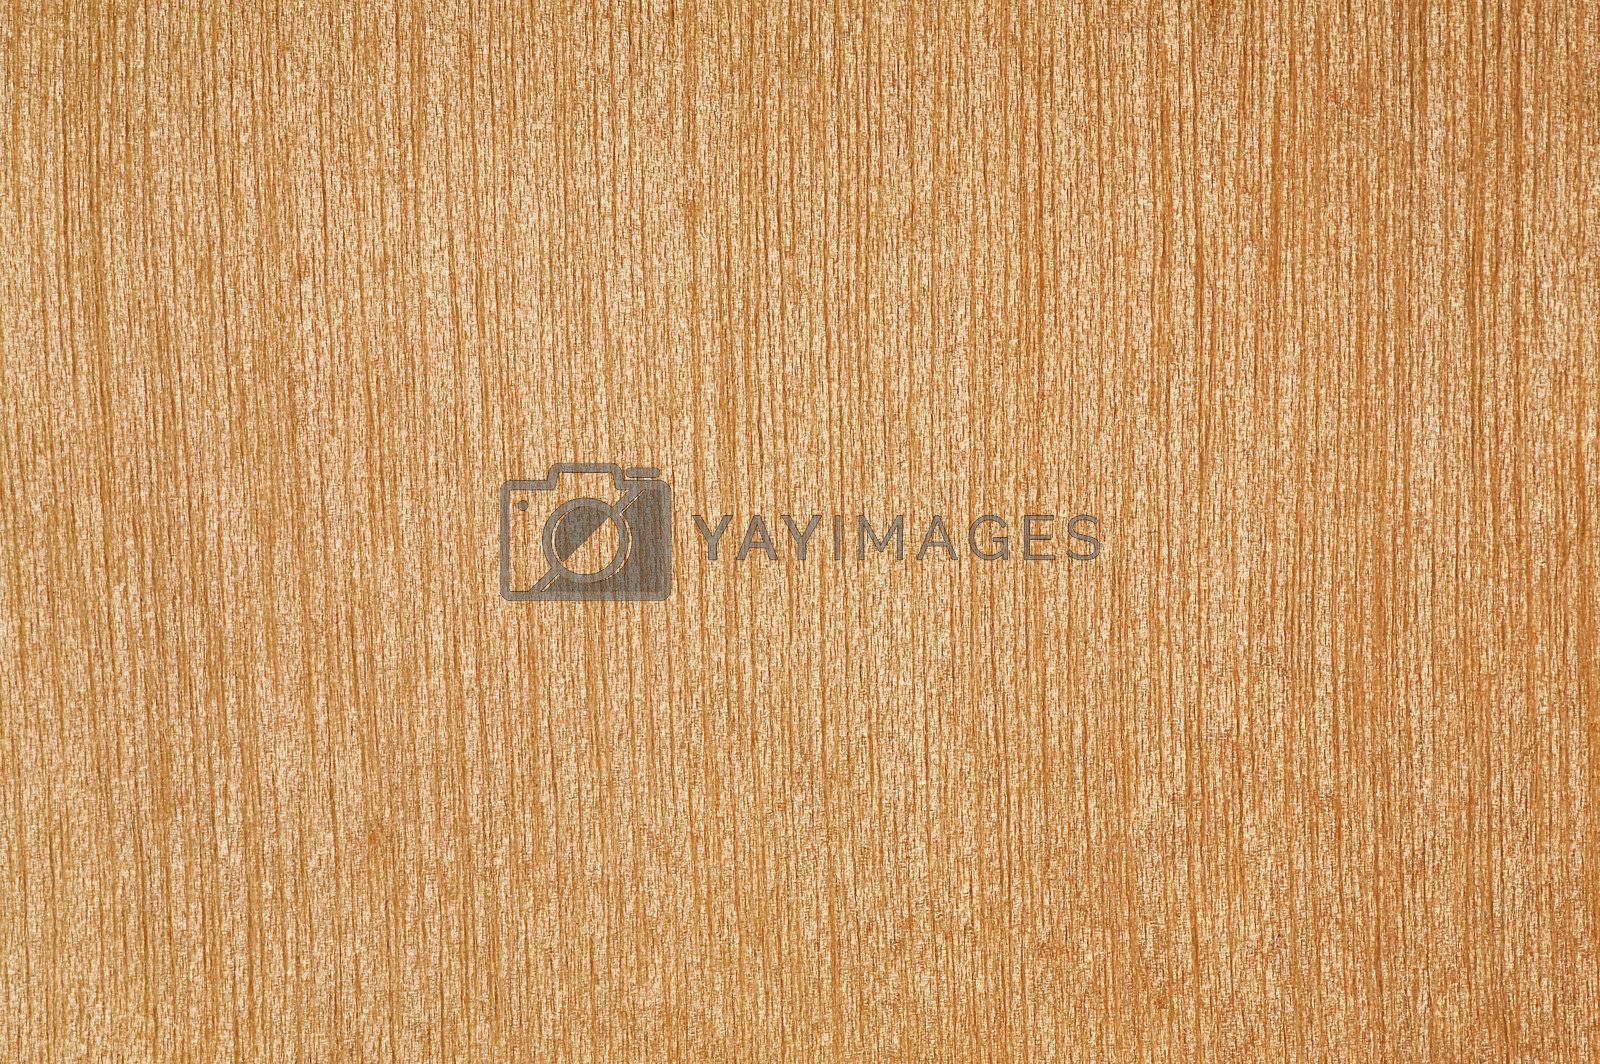 Royalty free image of Abstract wood texture by DeusNoxious